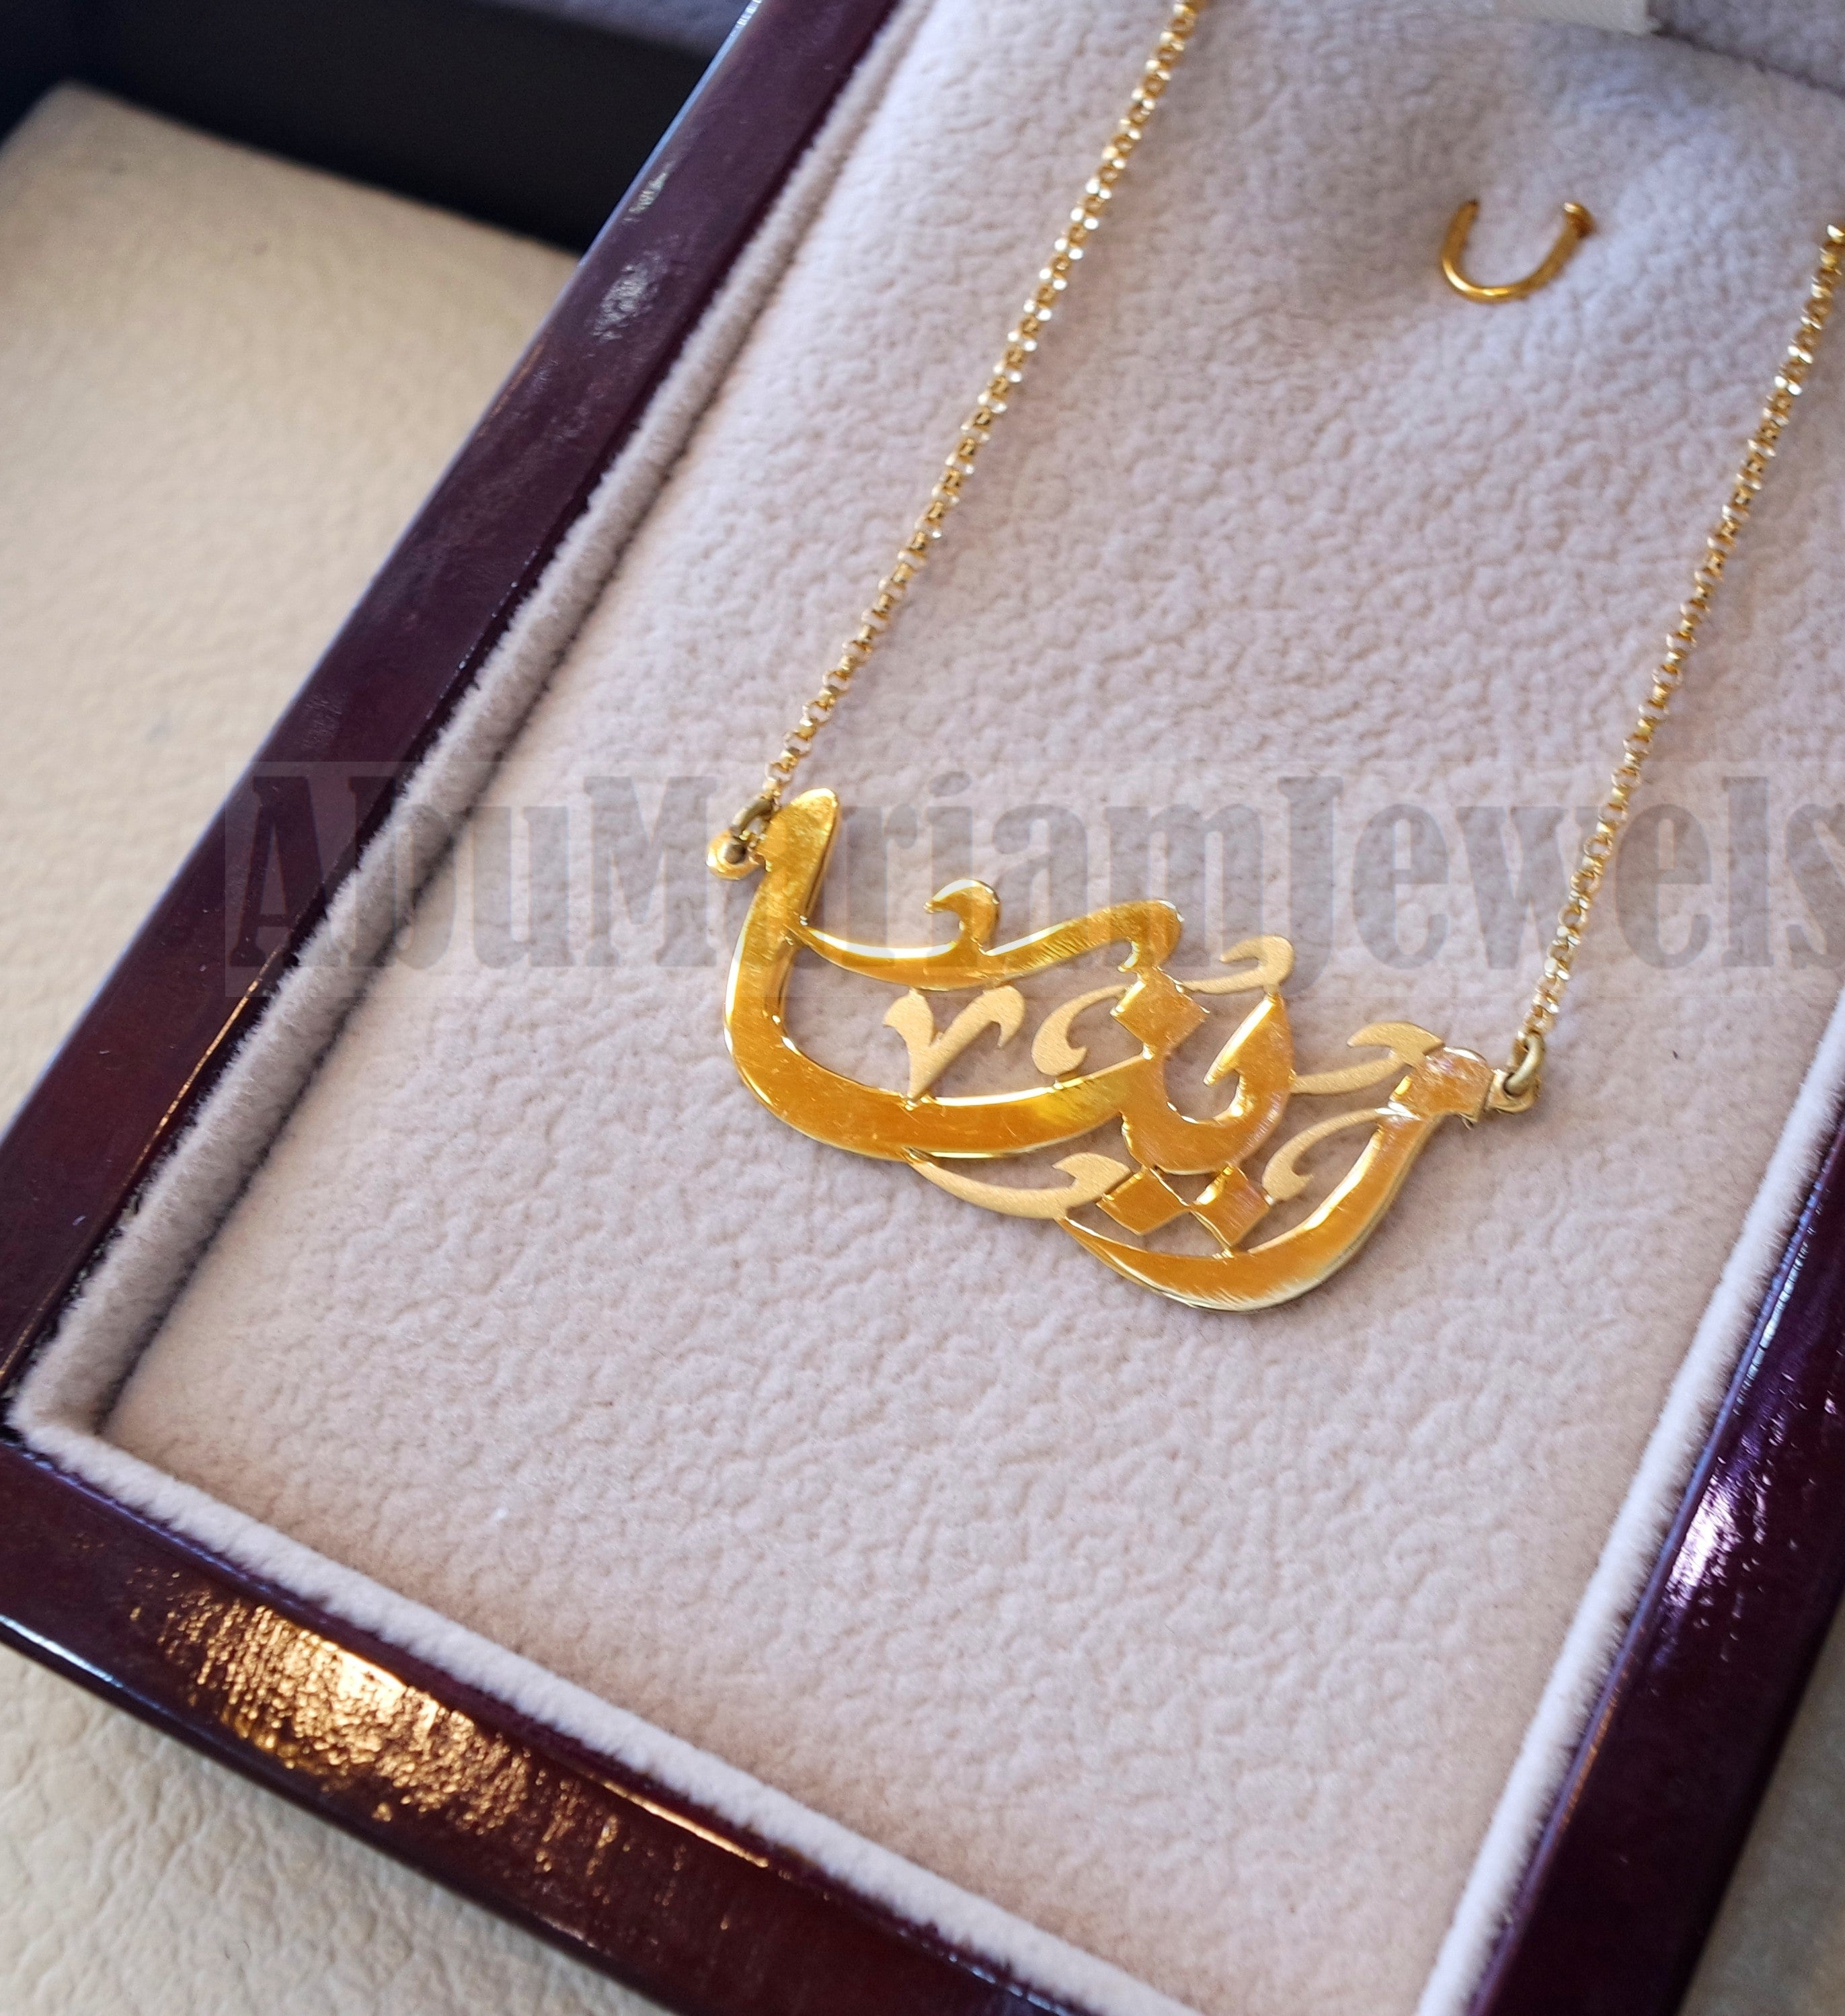 personalized customized 1 name 18 k gold arabic calligraphy pendant with chain standard , pear , rectangular or any shape fine jewelry N1012